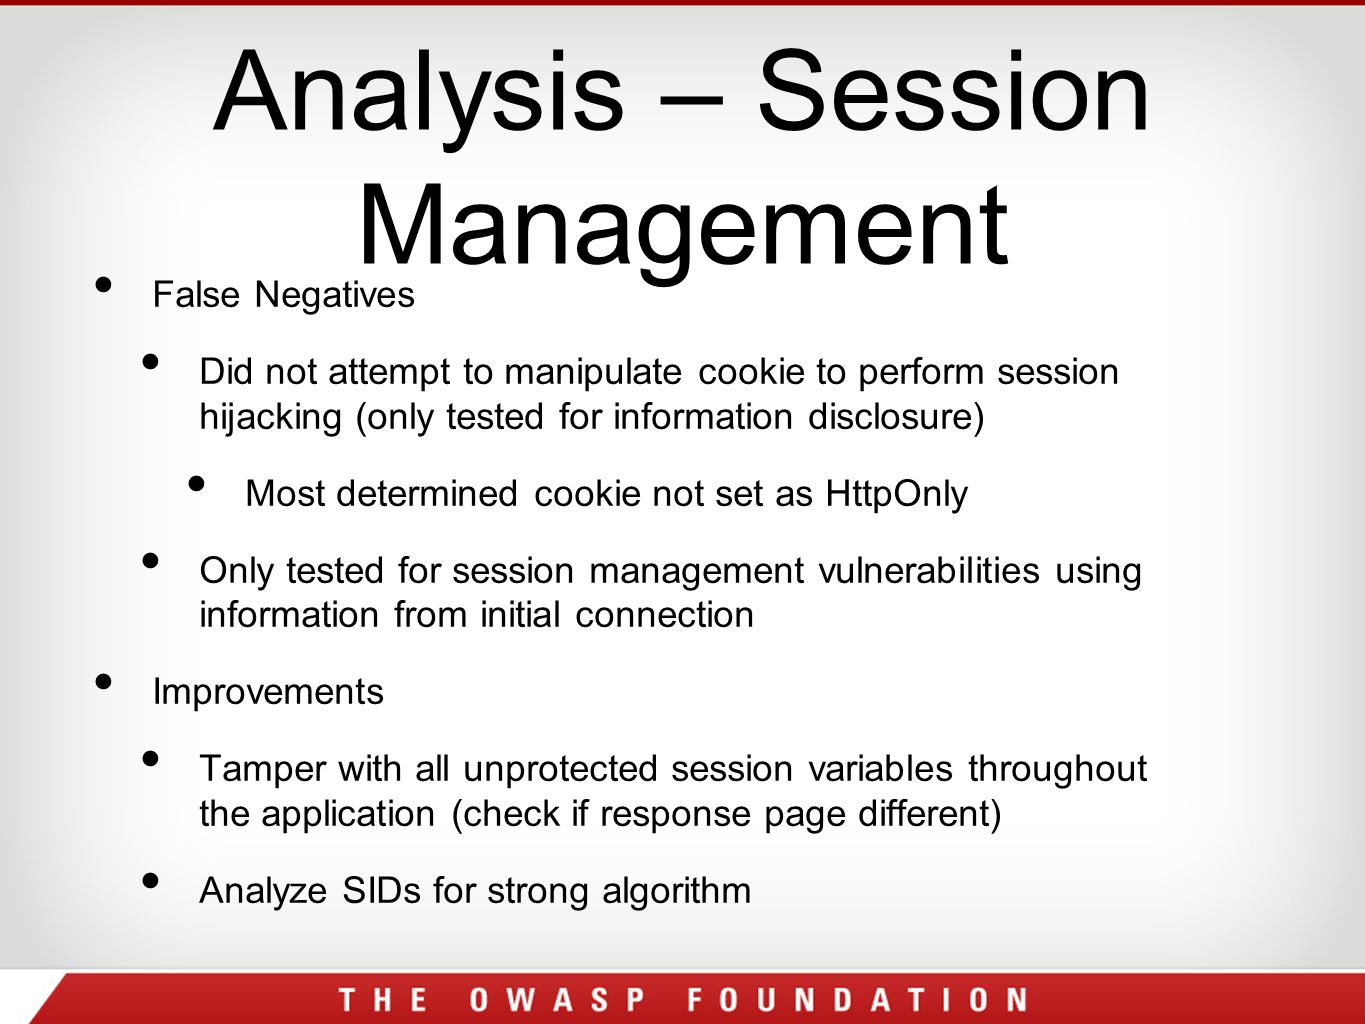 Analysis – Session Management False Negatives Did not attempt to manipulate cookie to perform session hijacking (only tested for information disclosure) Most determined cookie not set as HttpOnly Only tested for session management vulnerabilities using information from initial connection Improvements Tamper with all unprotected session variables throughout the application (check if response page different) Analyze SIDs for strong algorithm